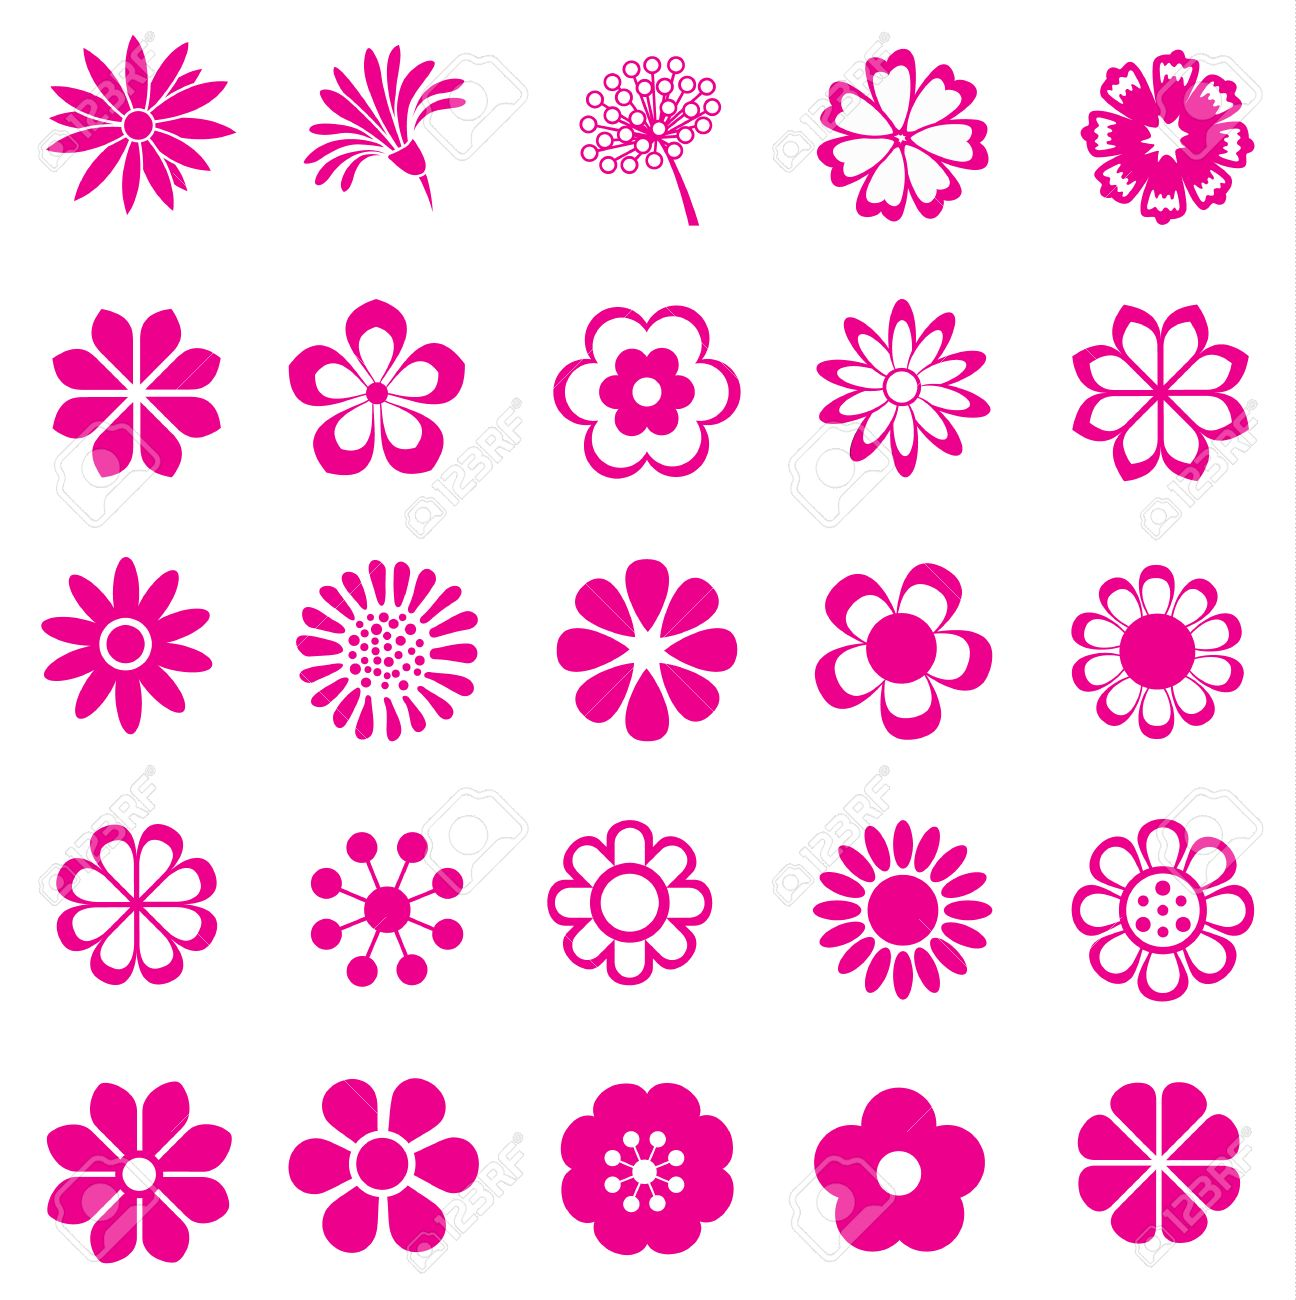 Pink flower vector set flowers icon royalty free cliparts pink flower vector set flowers icon stock vector 25971247 dhlflorist Images